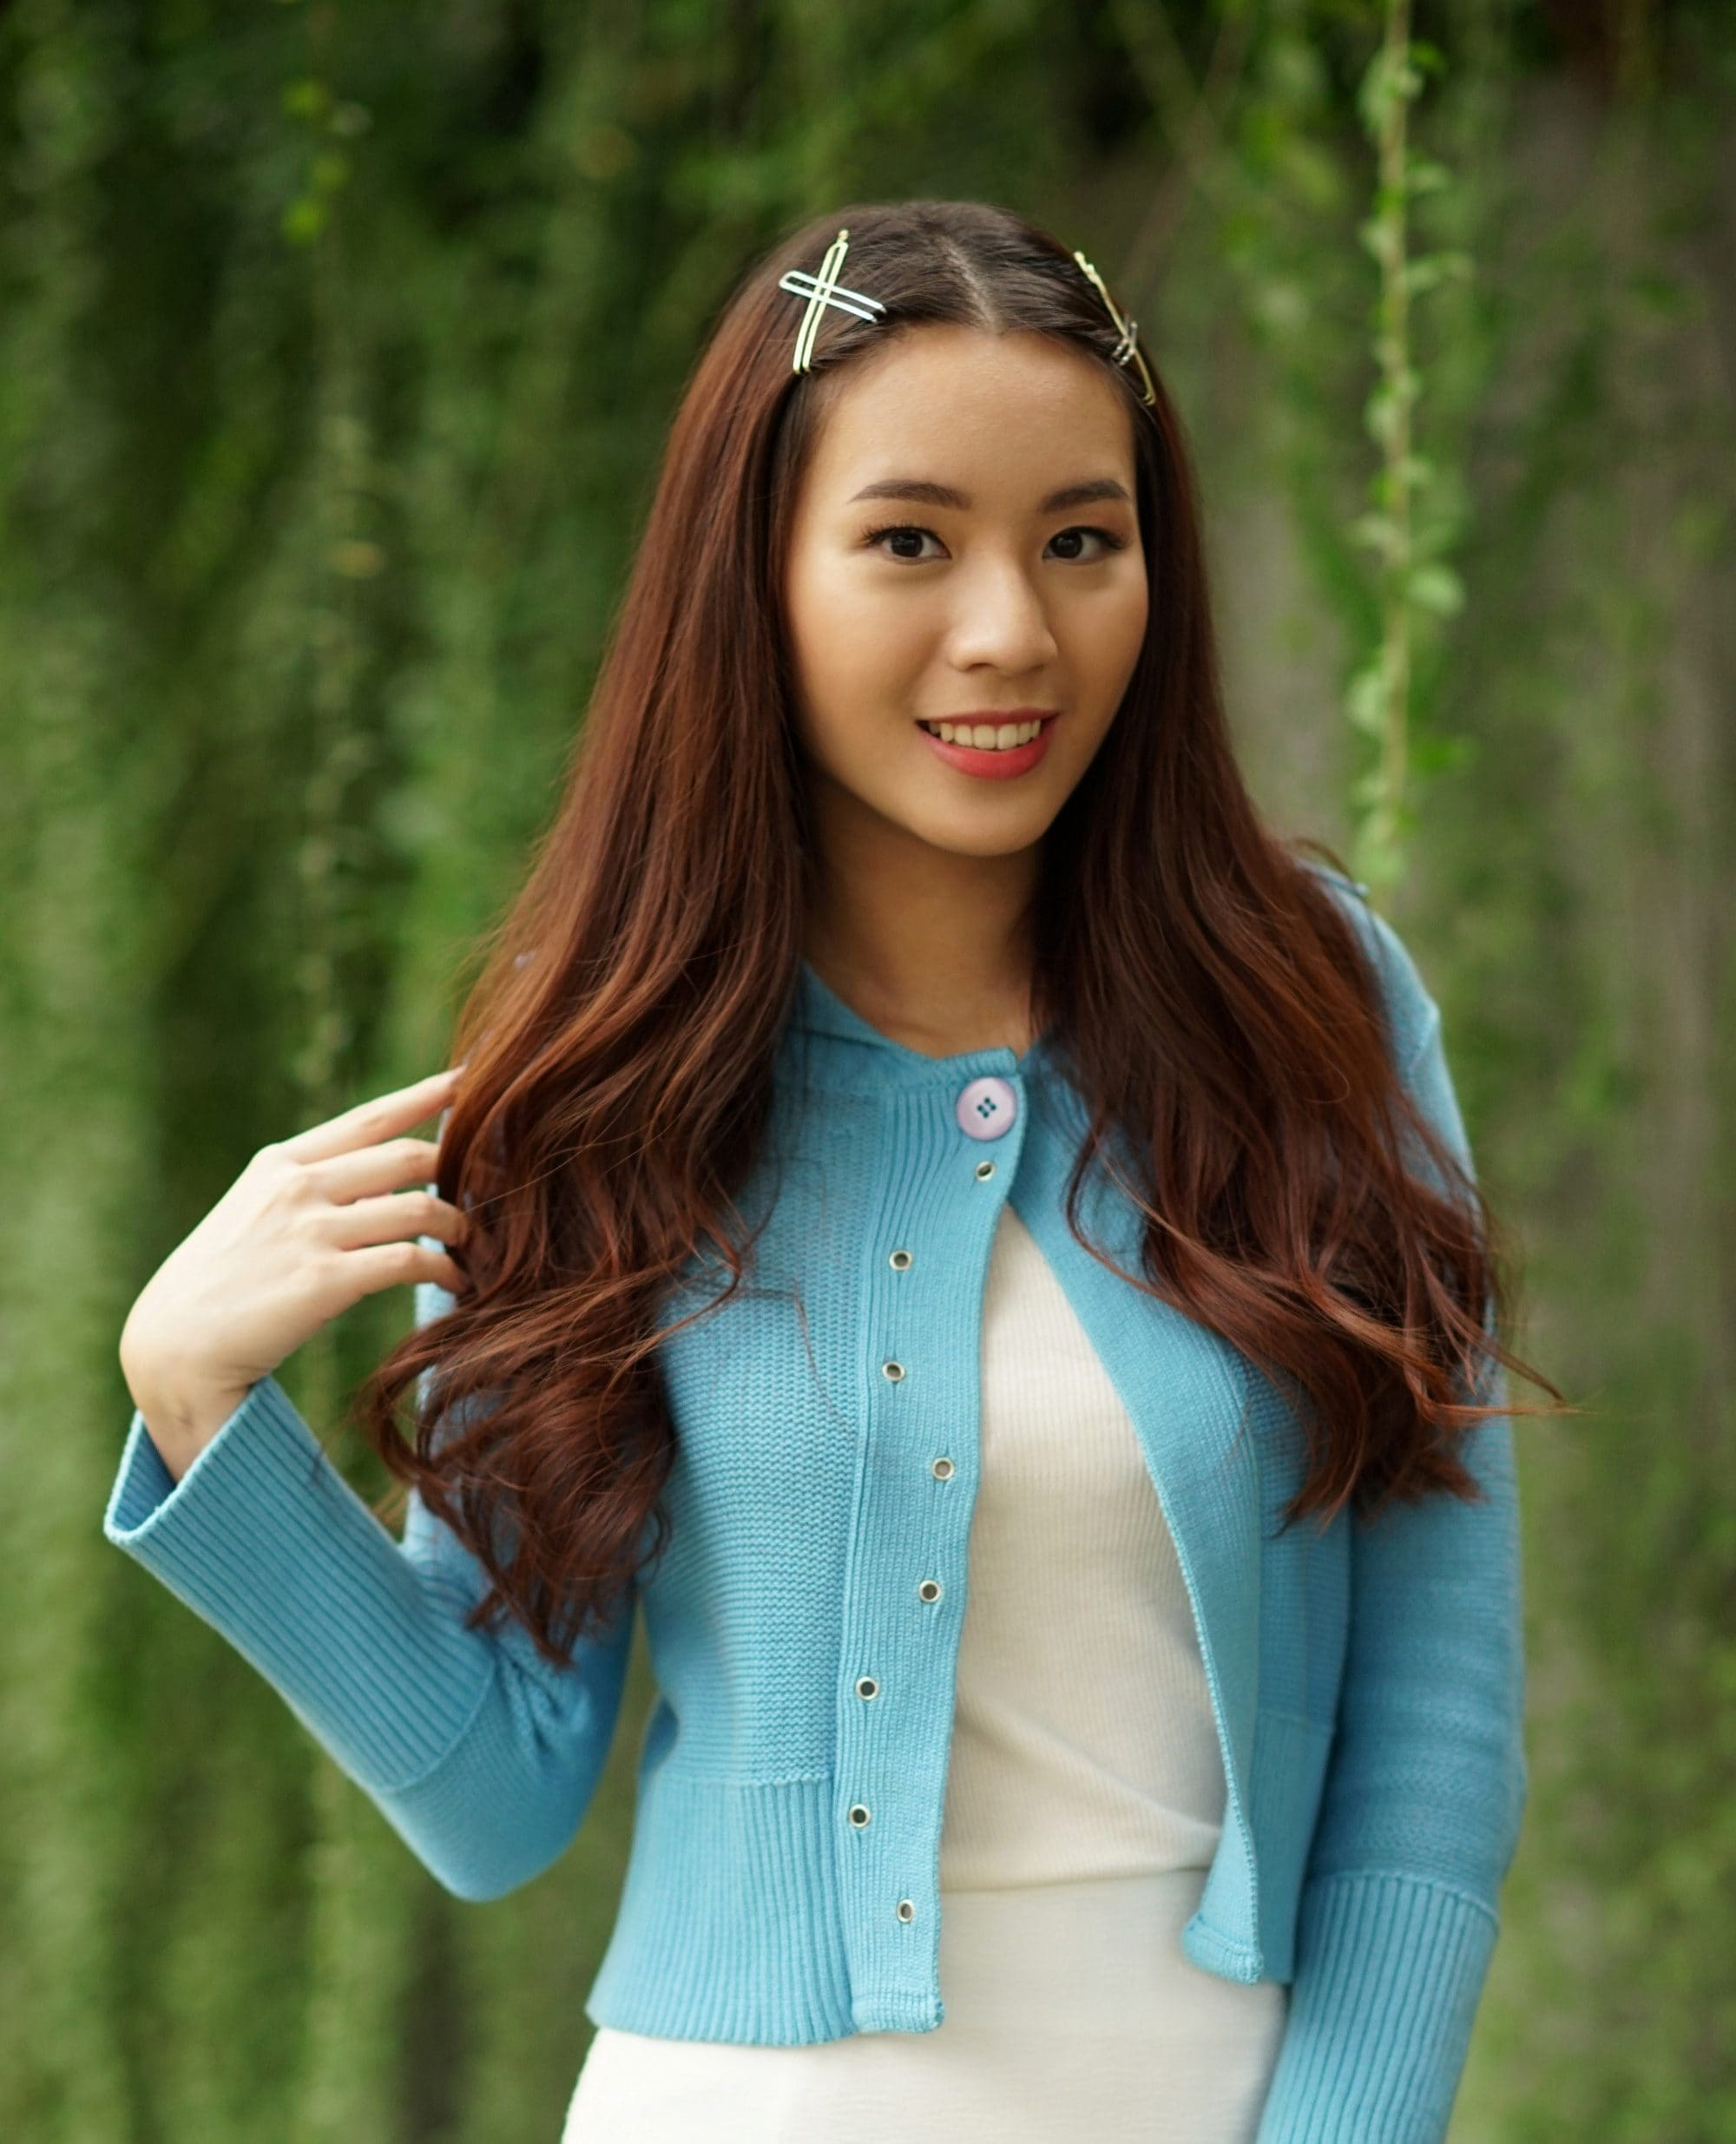 Benefits of aloe vera for the hair: Asian woman with long dark wavy hair with hair clips wearing a blue cardigan and white dress outdoors